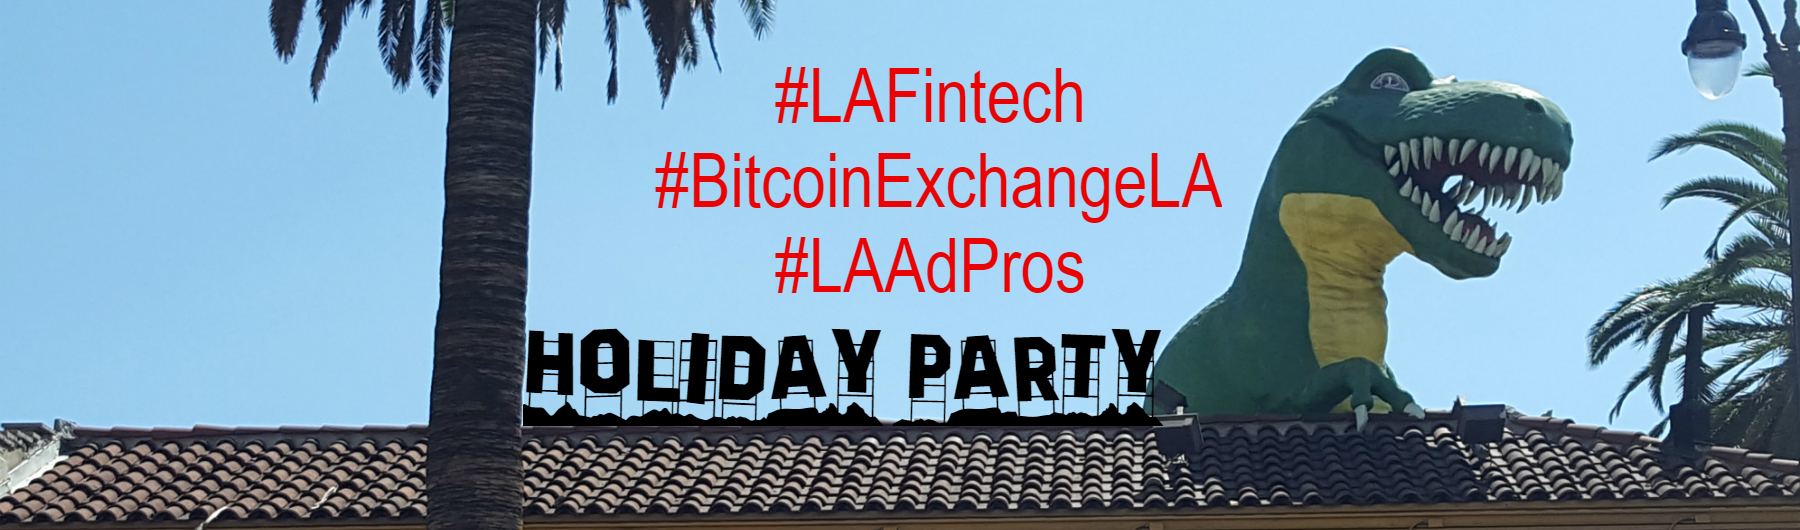 LA Fintech+Bitcoin Exchange+ LA Ad Pros Holiday Party